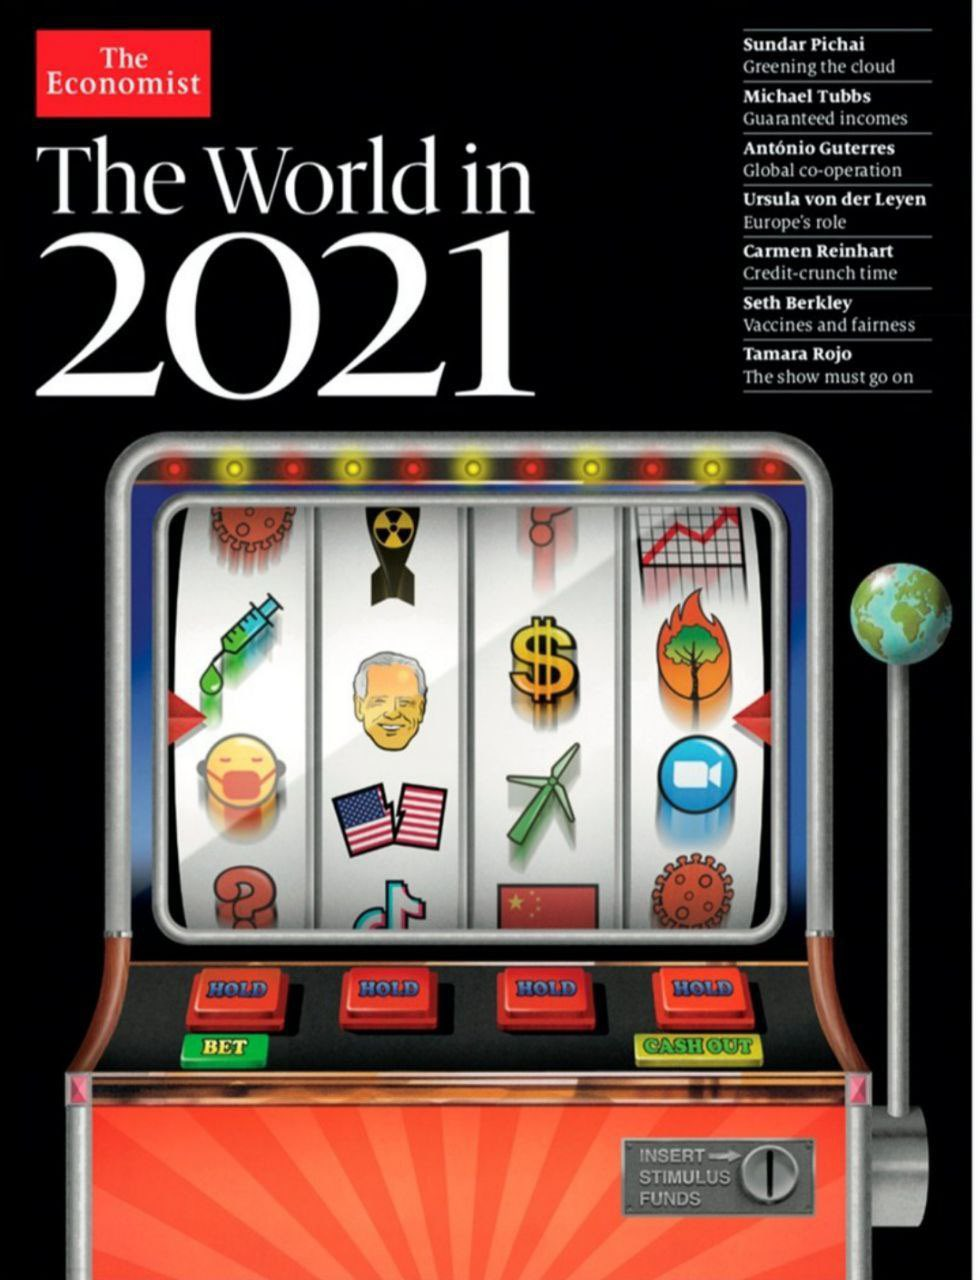 What The Economist predicted for 2021 and for what purpose 103